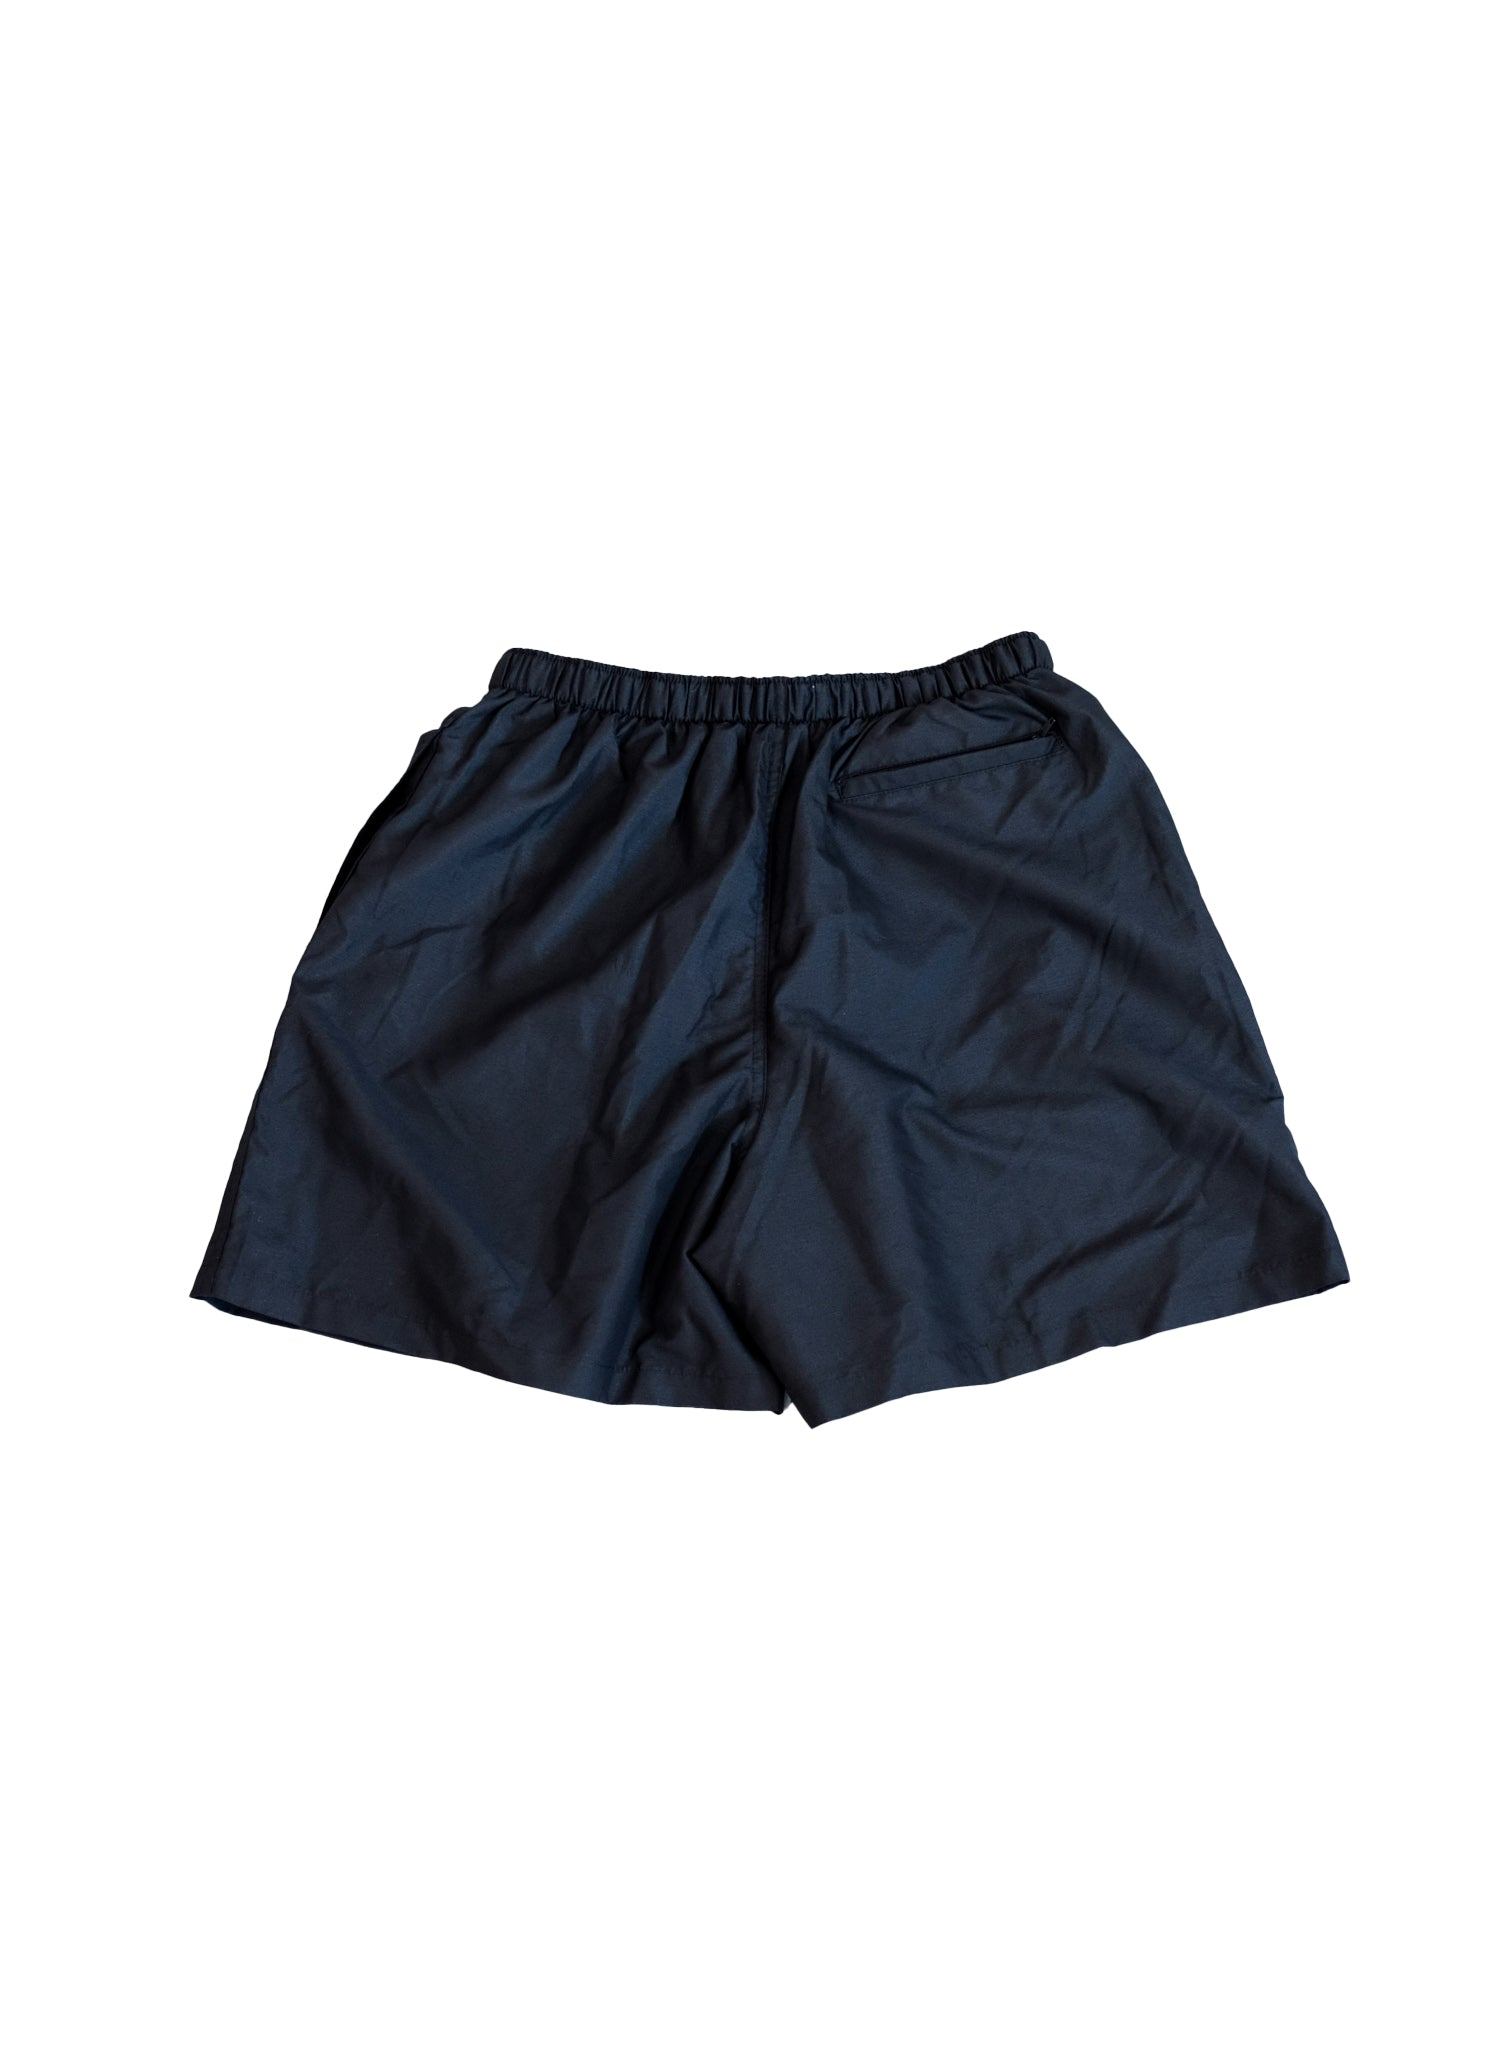 COBRA CAPS / MICROFIBER SHORTS